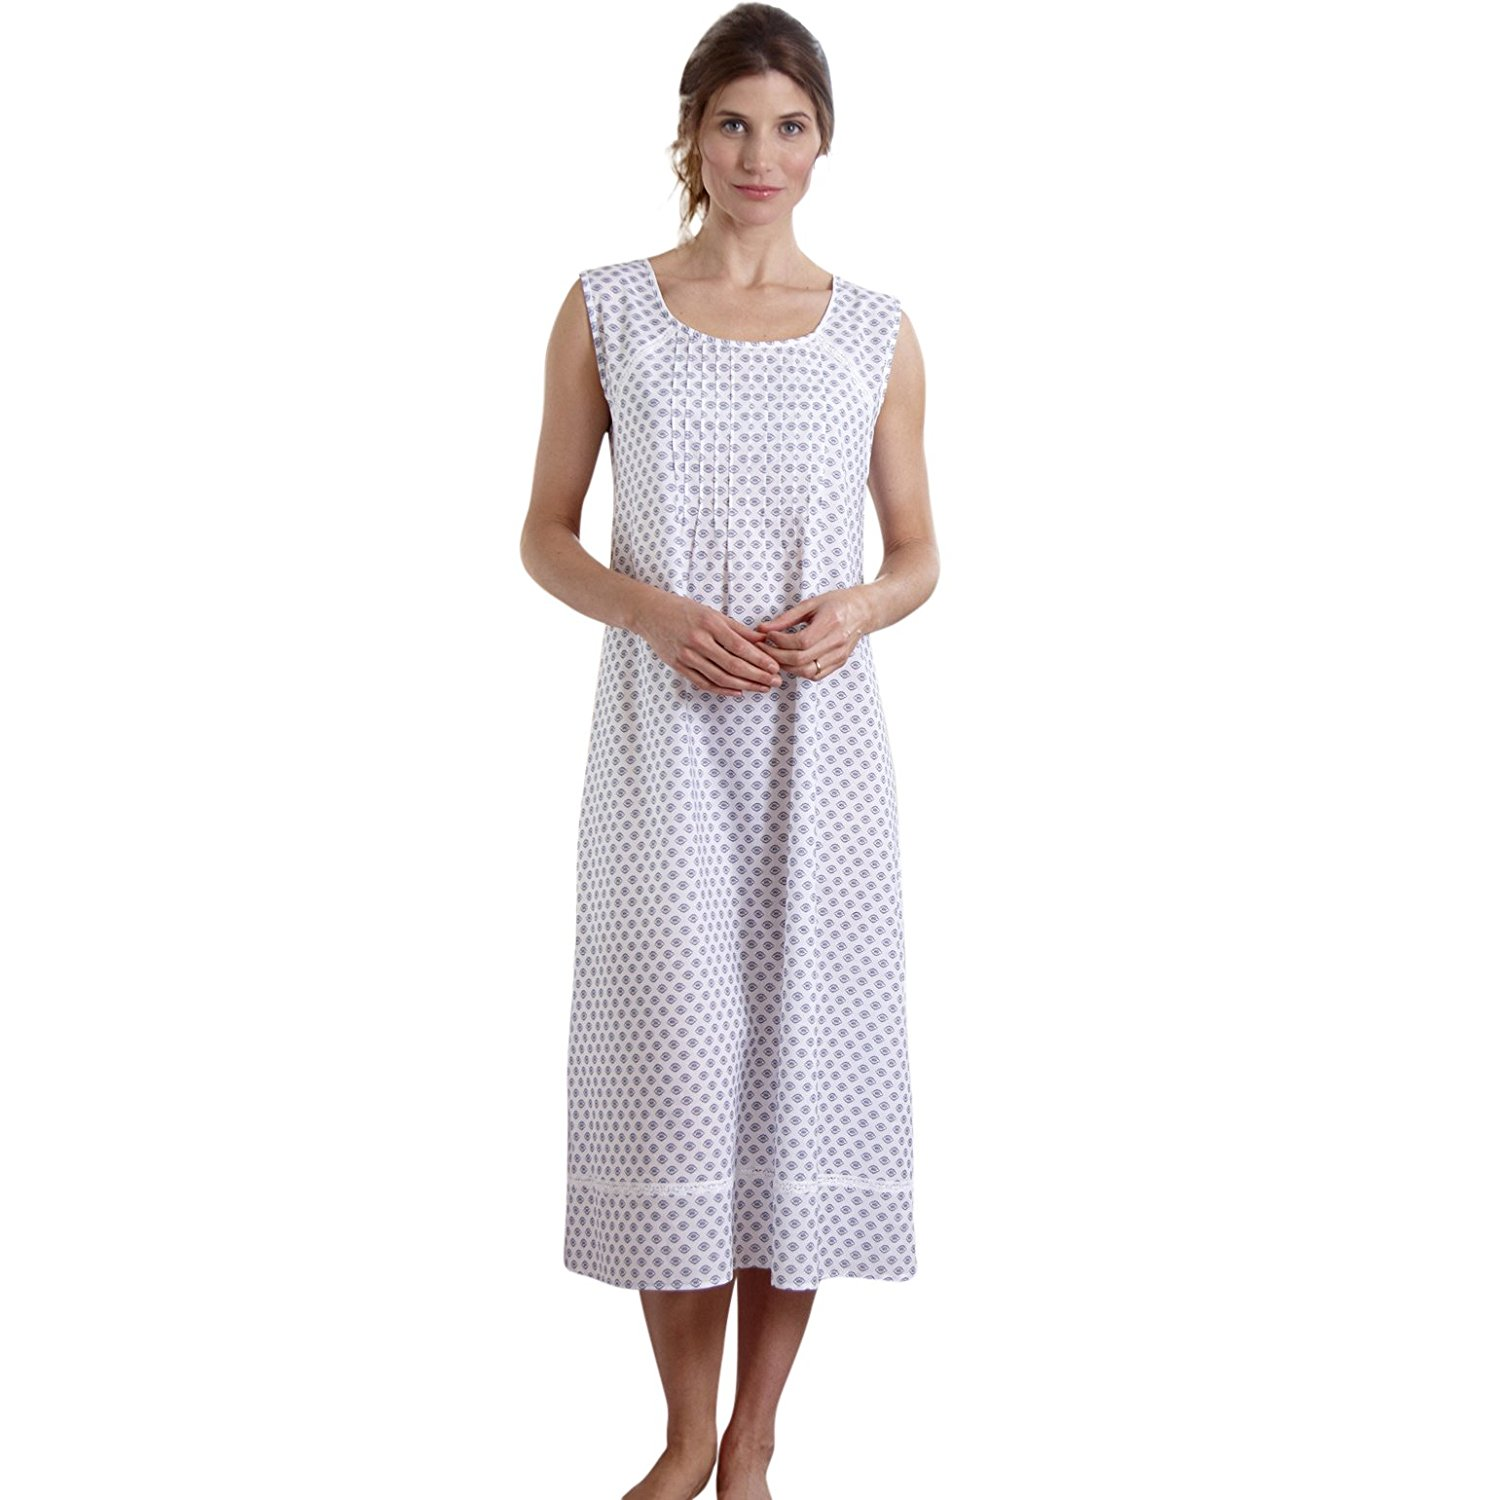 03c7d43f04 Get Quotations · The Irish Linen Store Womens Louisa Sleeveless Cotton  Nightgown White Pattern